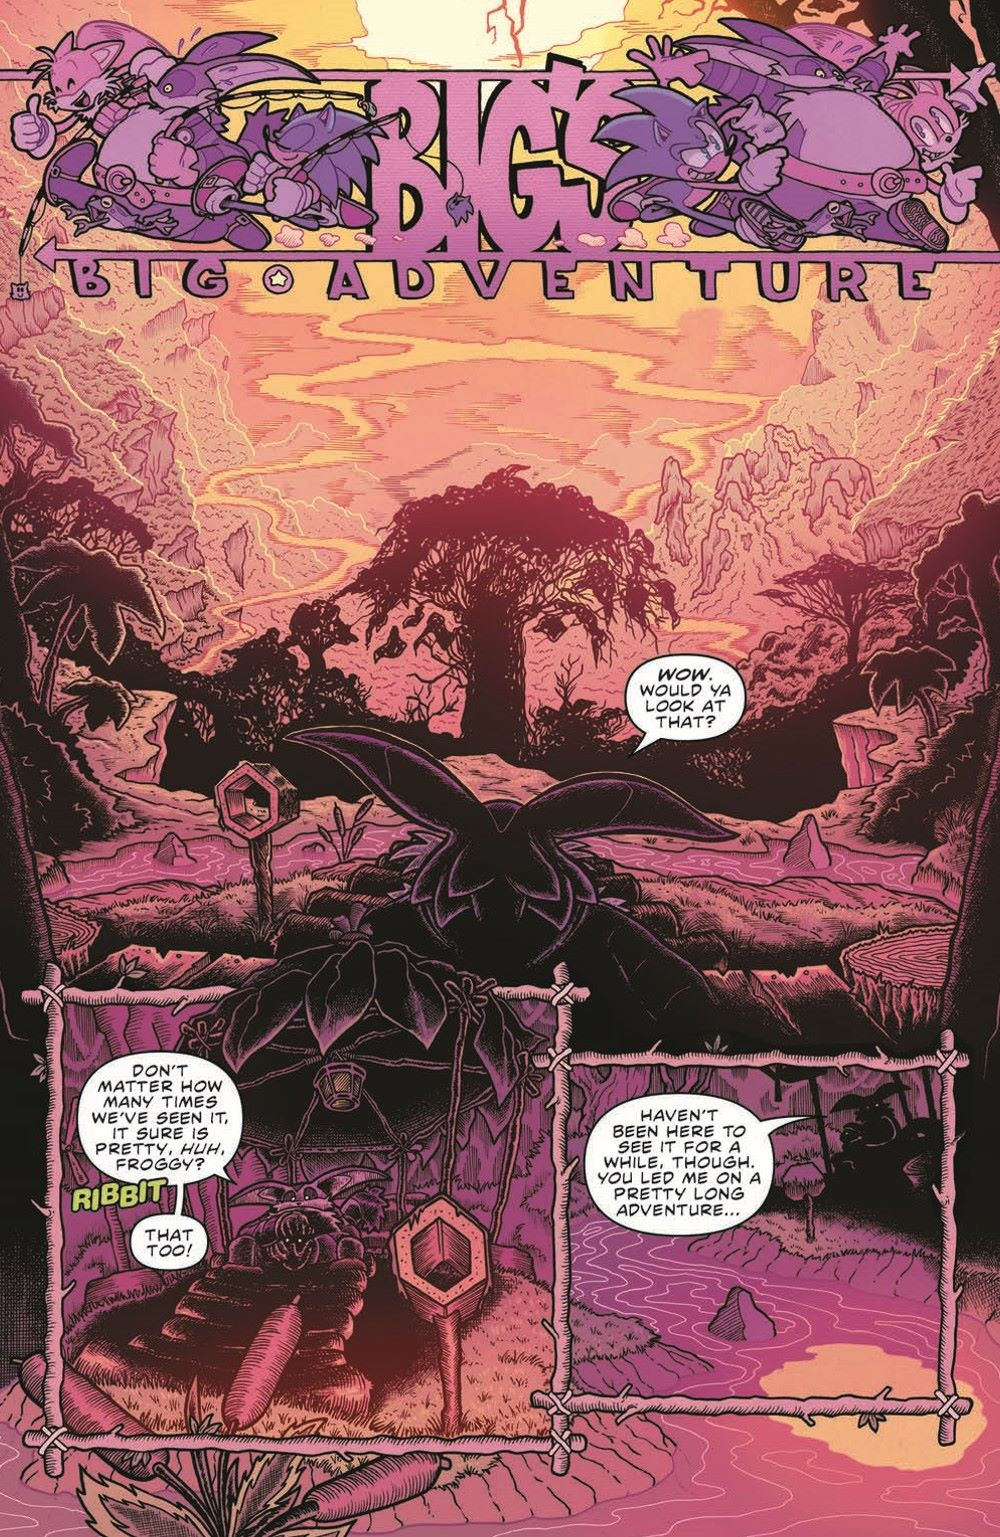 Sonic_V08_TPB_pr-4 ComicList Previews: SONIC THE HEDGEHOG VOLUME 8 OUT OF THE BLUE TP